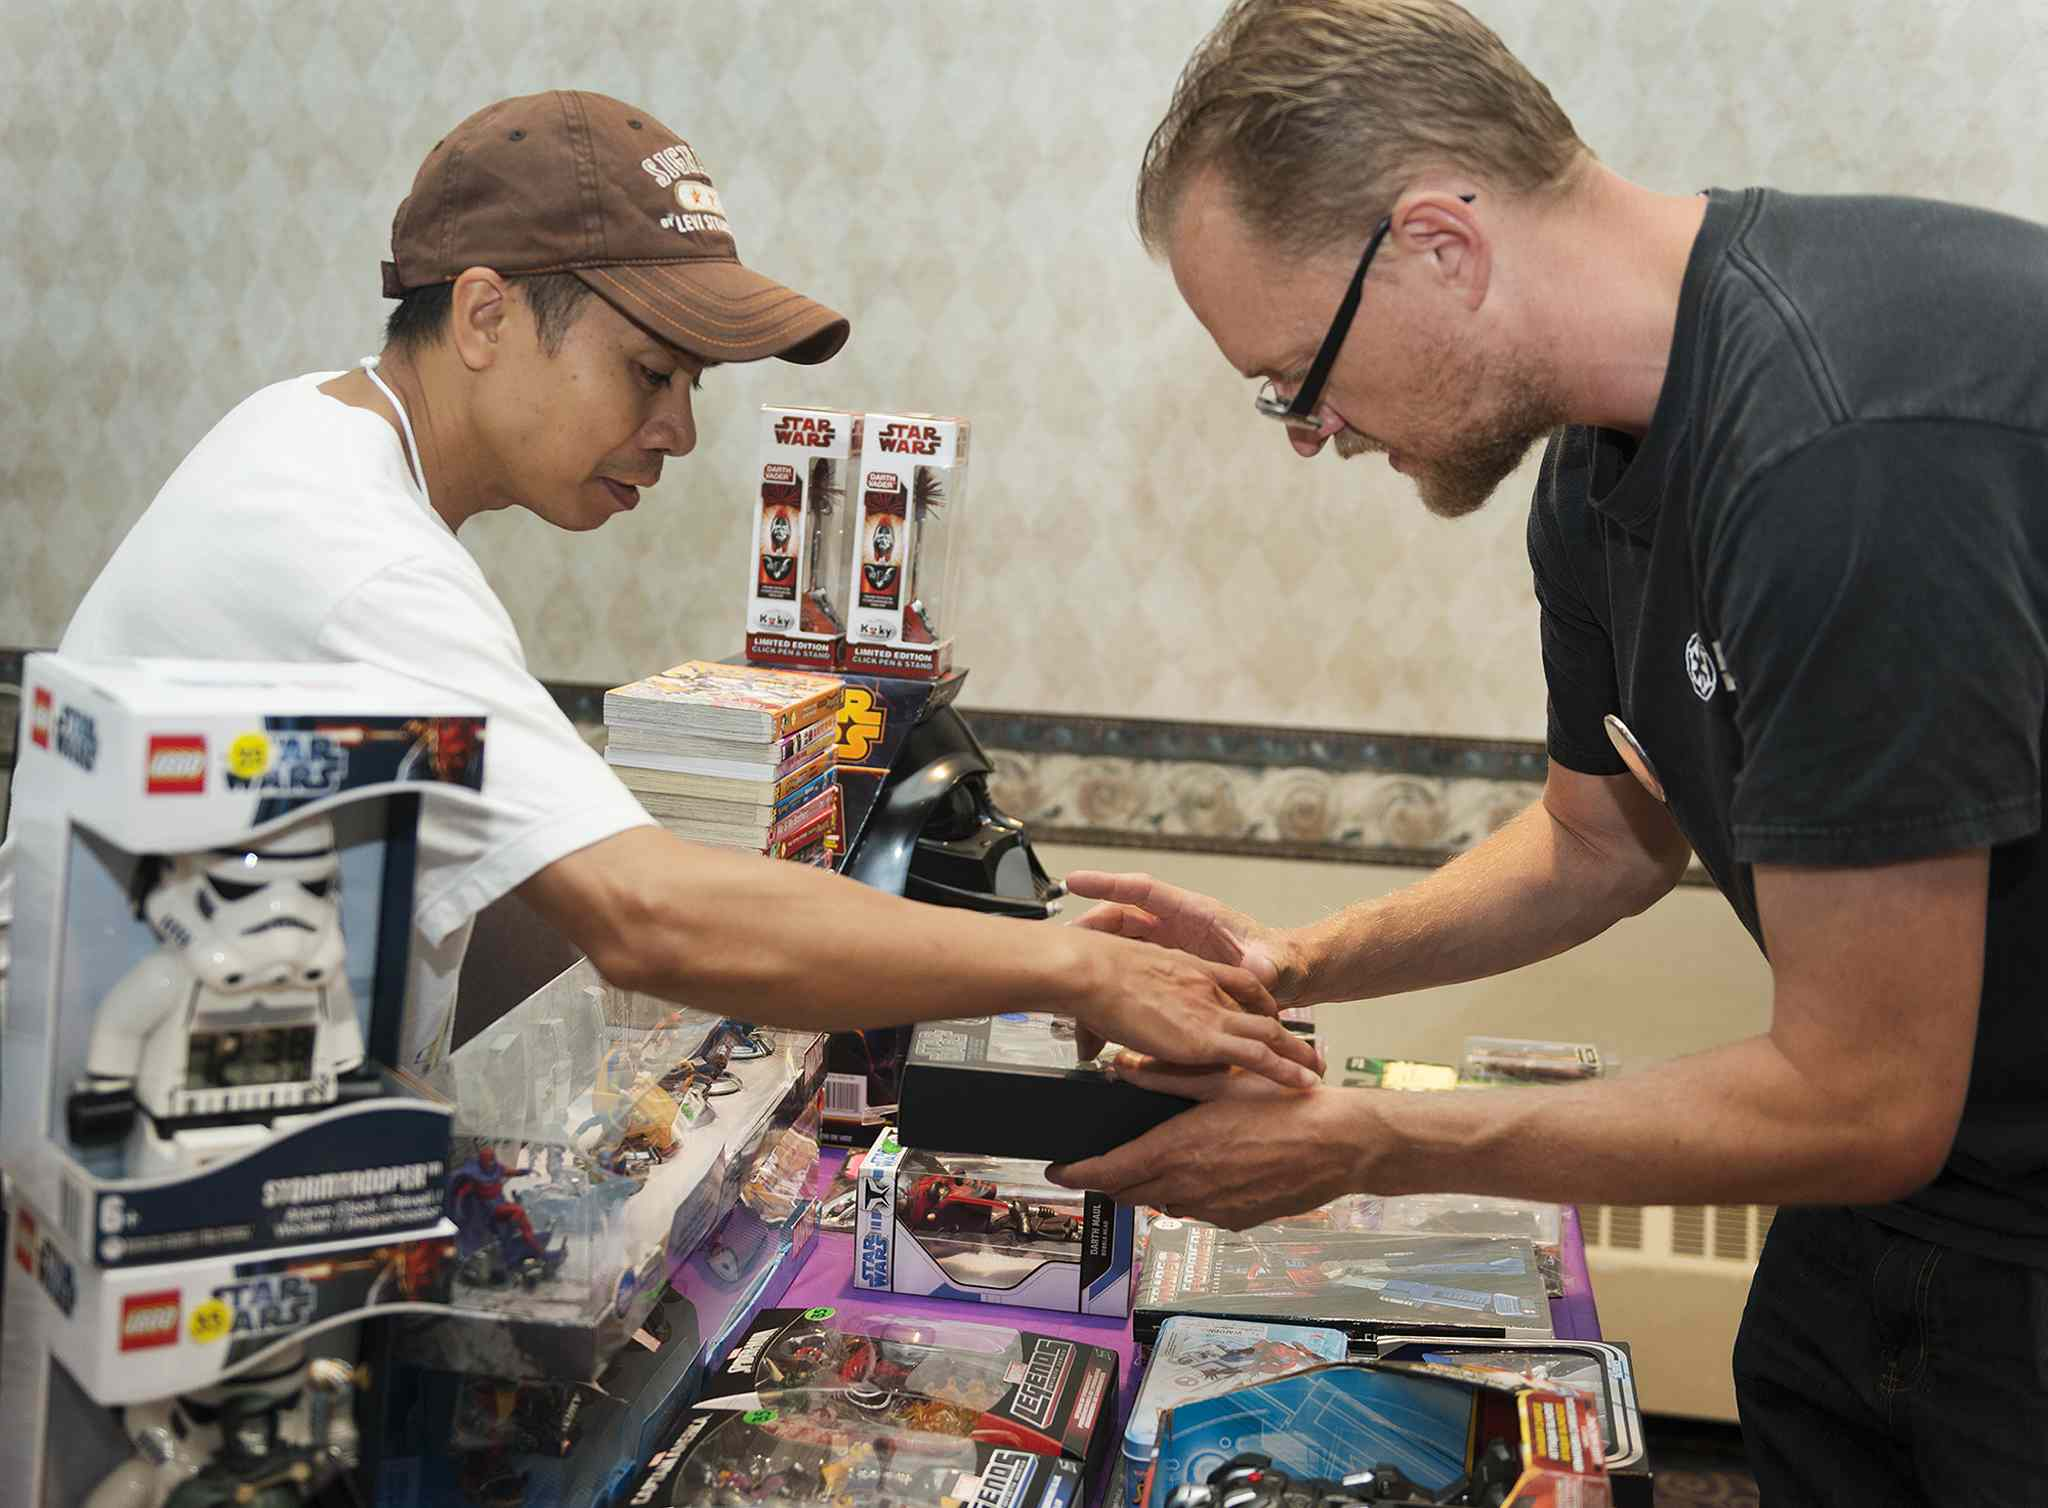 Star Wars fan Jerry Stokes (right) fit right in at Rocky Abelada's vendor in the Clarion Hotel while attending the Transformers convention with a friend on Saturday.